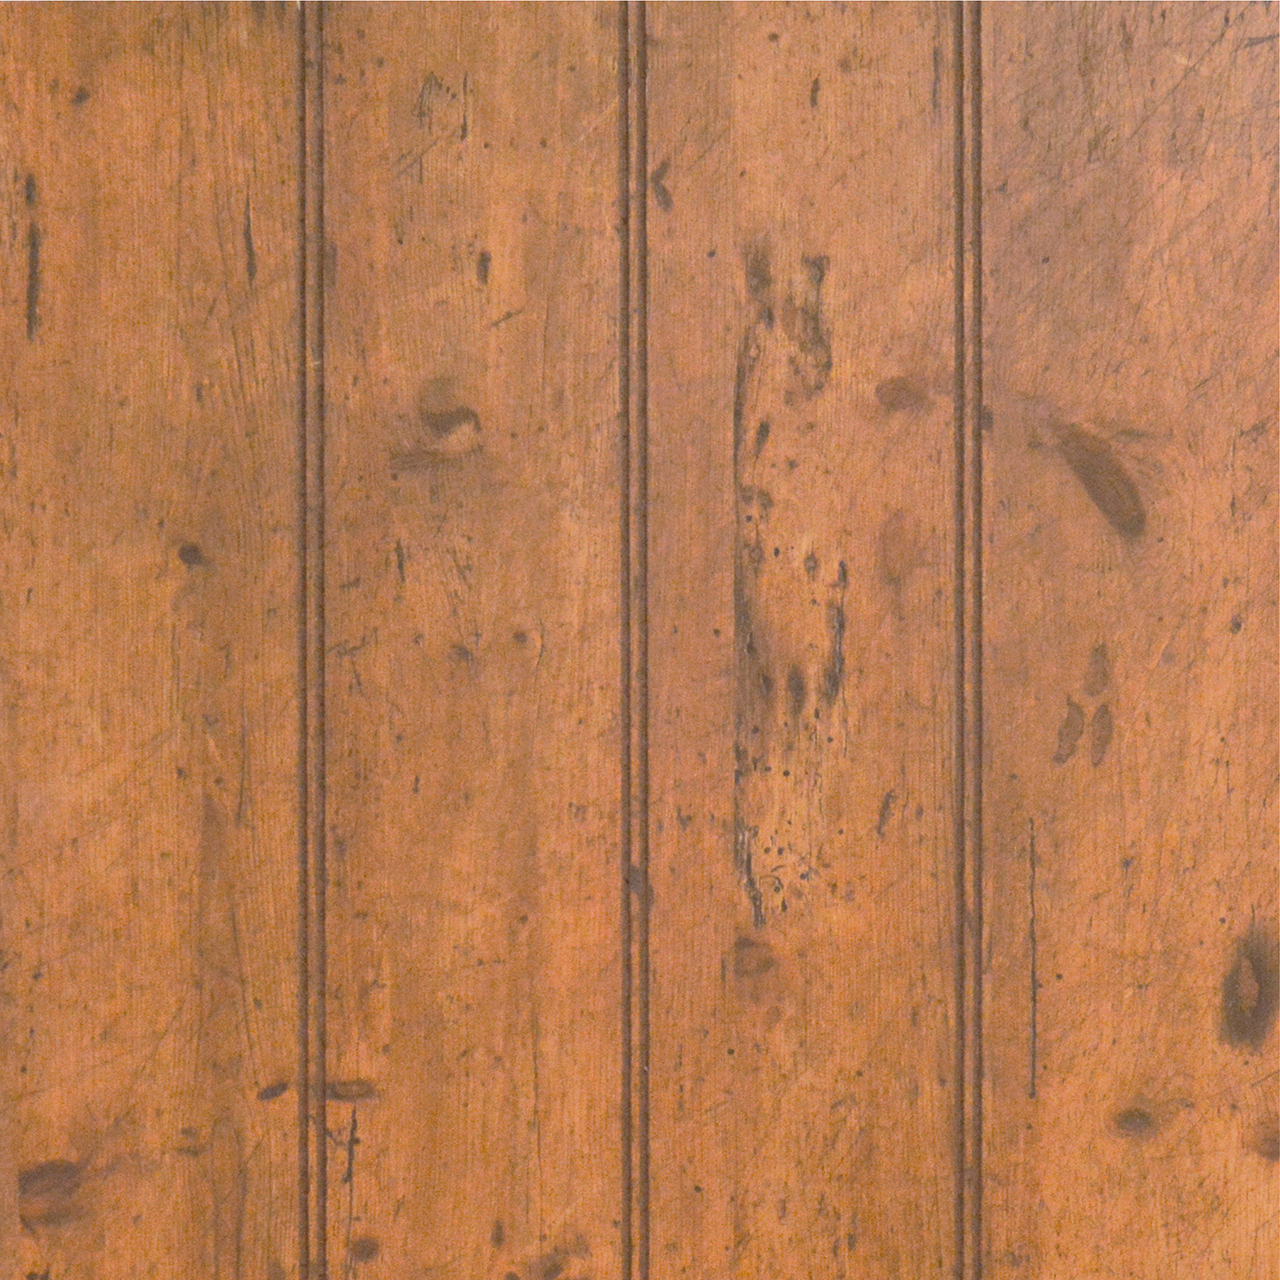 Plywood Paneling Wine Cellar Oak Beadboard Vintage